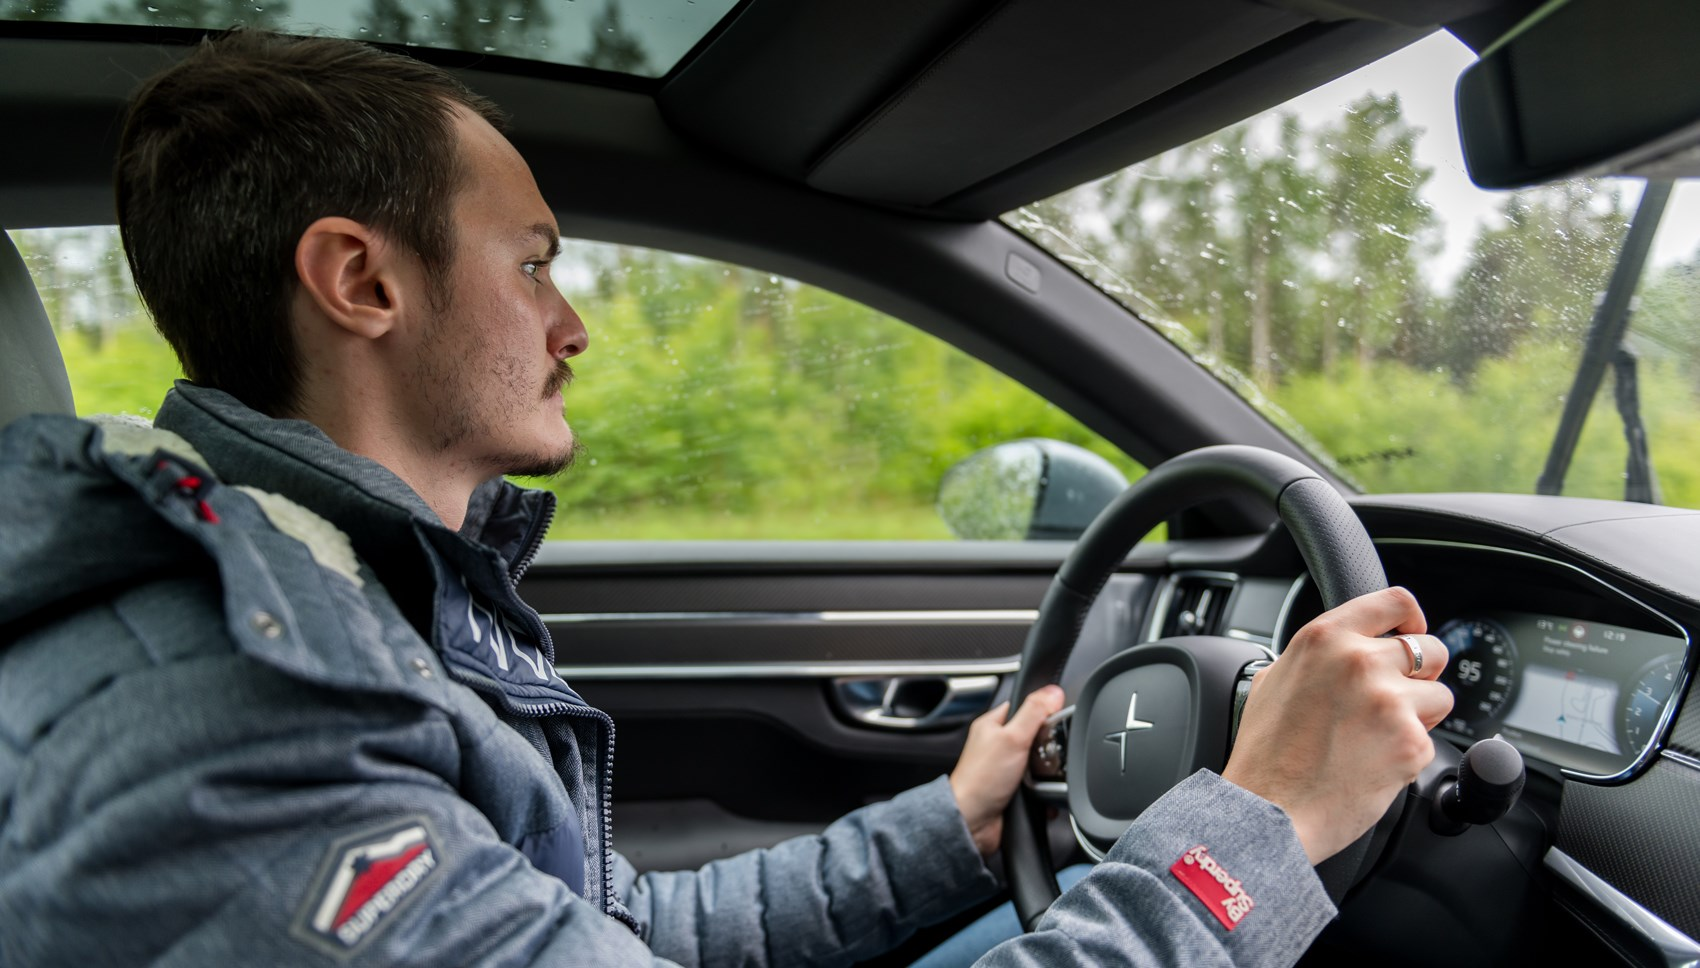 Polestar 1 prototype Jake driving